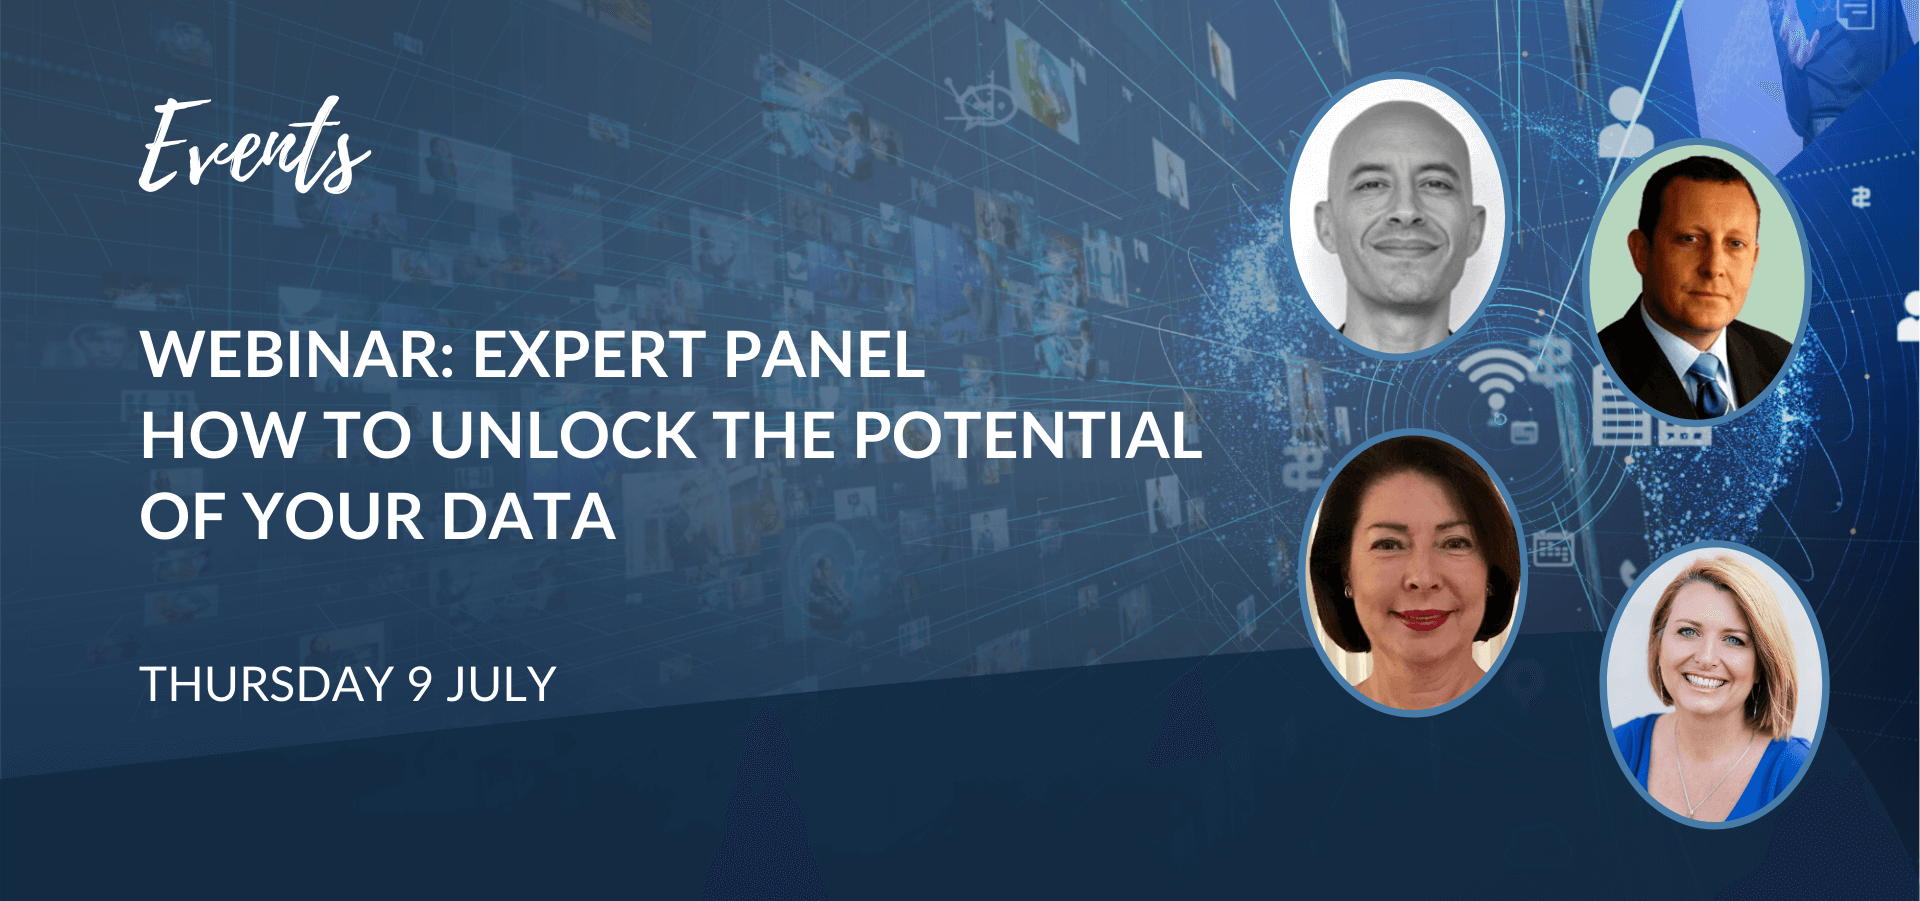 Webinar: Expert Panel: How to Unlock The Potential of Your Data